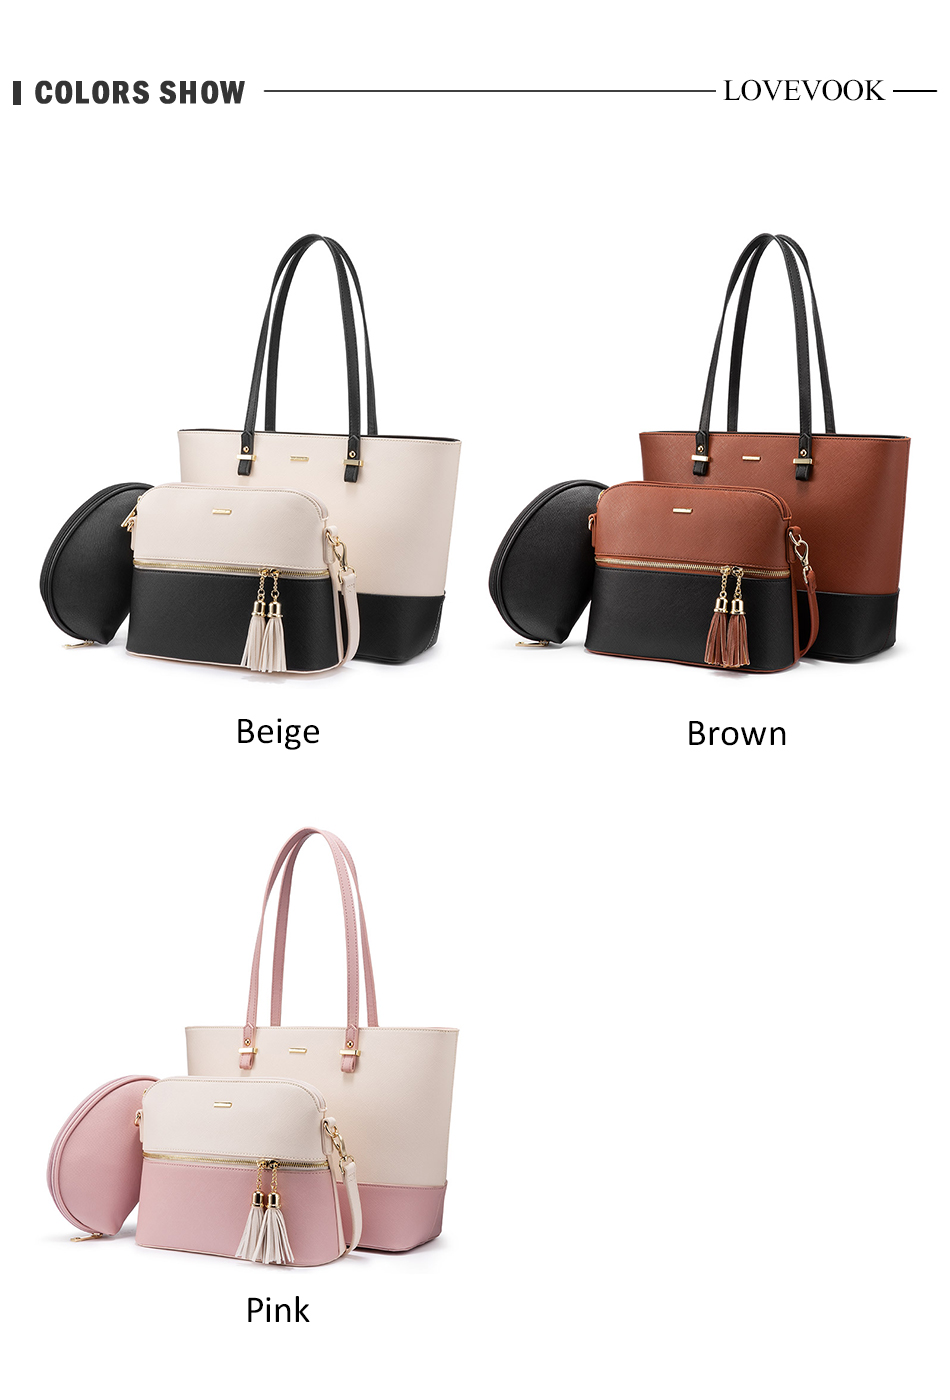 H86eadc527aea42f680fb755e4886ed99a - women shoulder bags crossbody bags for ladies large tote bag set 3 pcs clutch and purse luxury handbag women